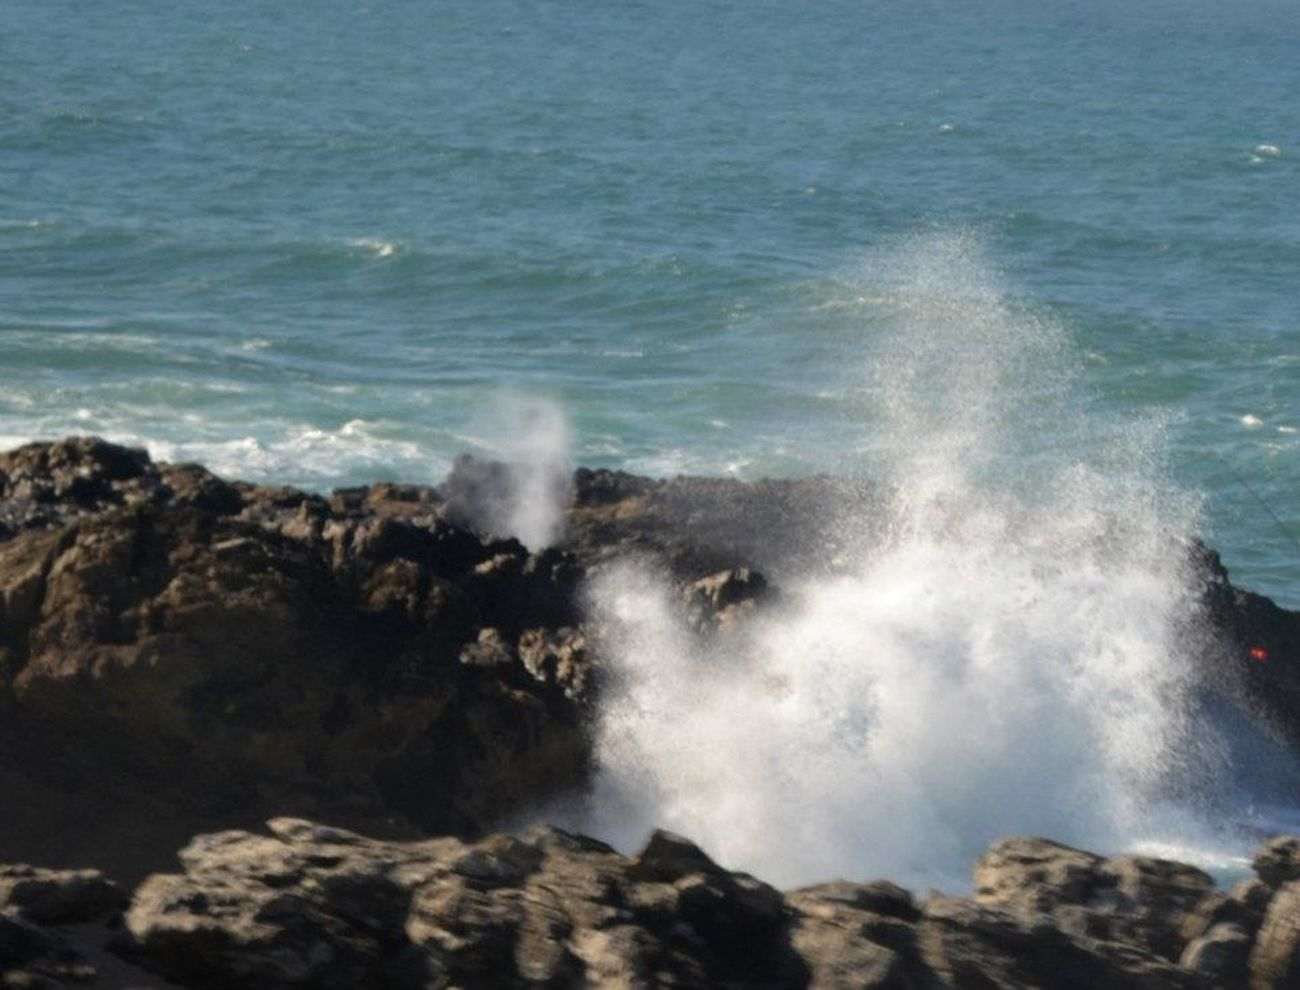 I love trying to get the crashing waves. They prove to be a challenge. Amman, Jordan